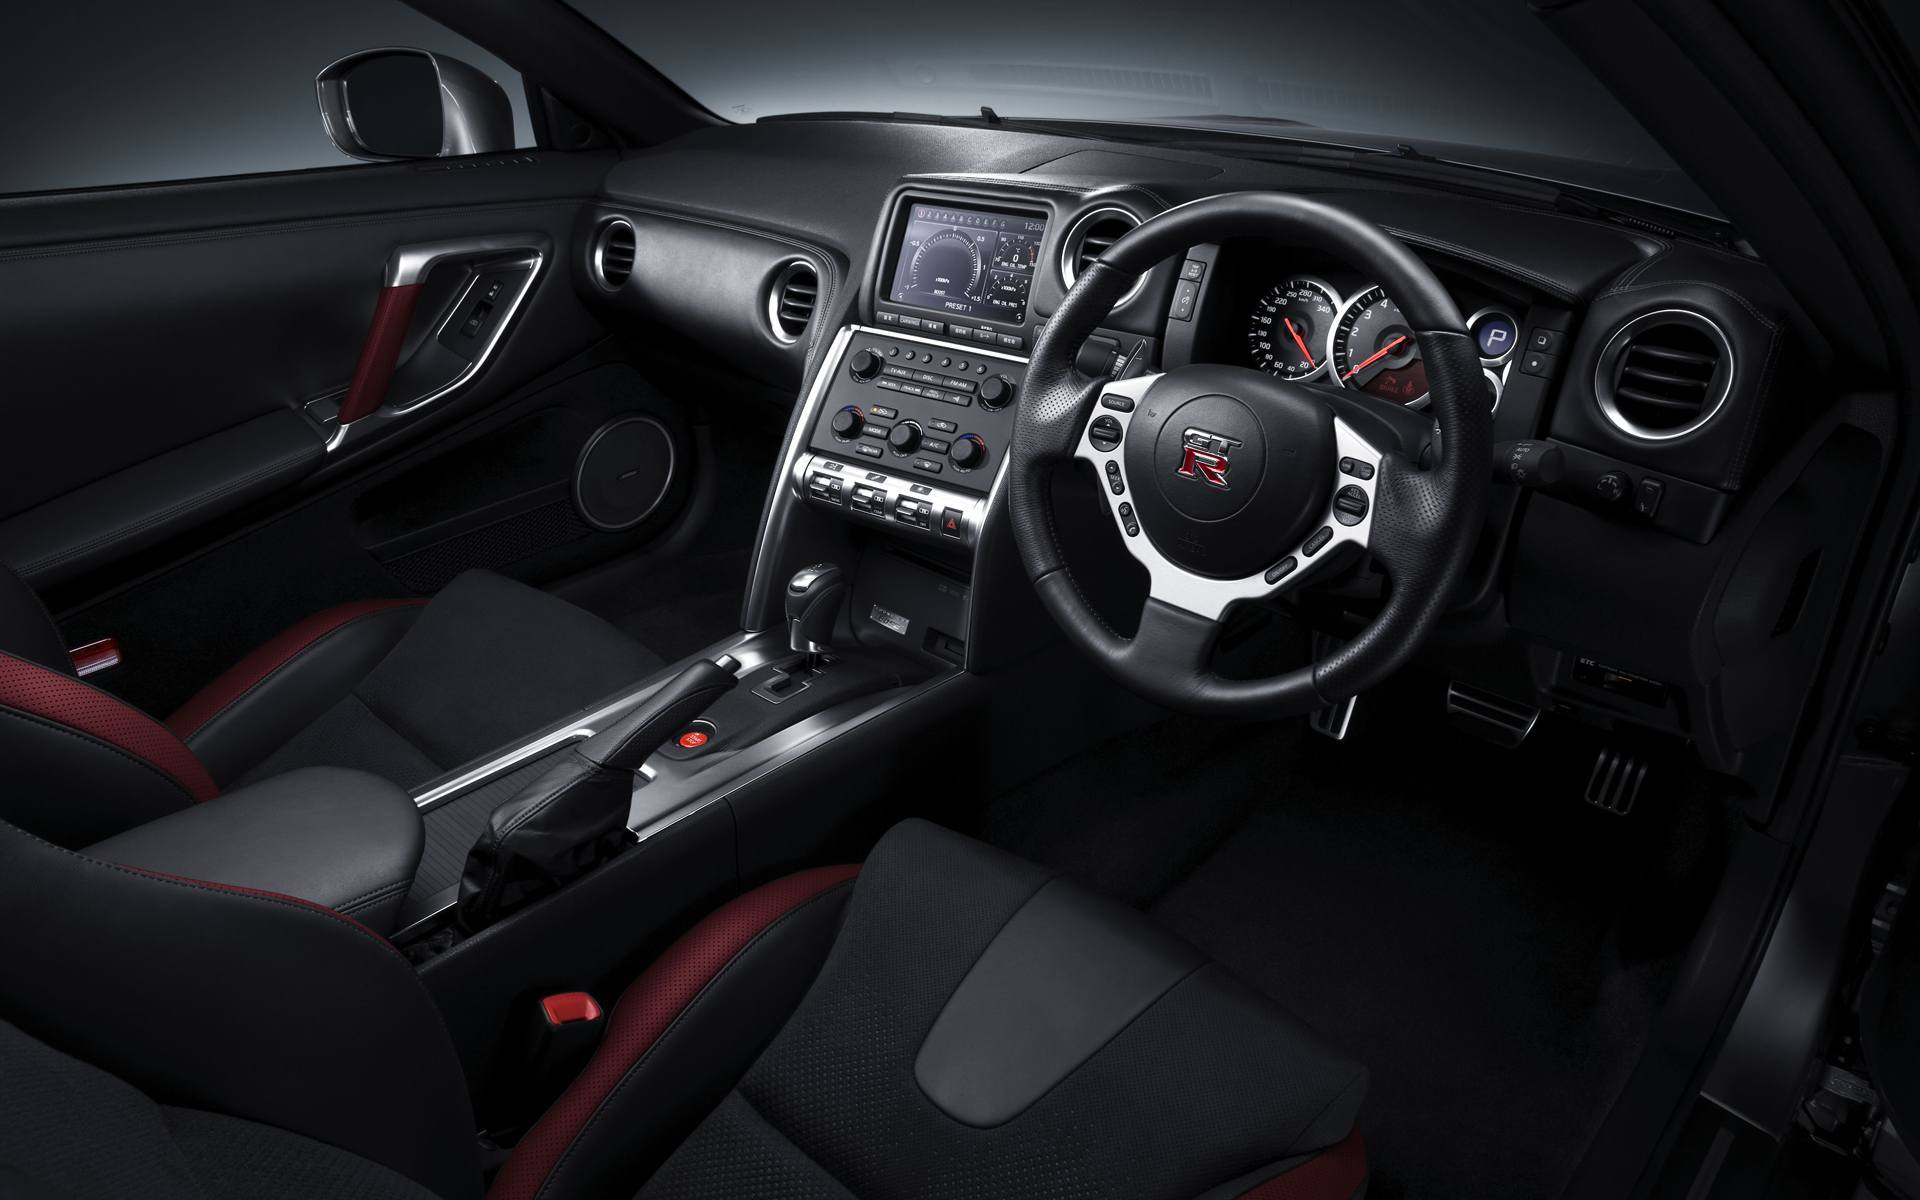 Car Interior Wallpaper 36899 1920x1200px Car Interior Wallpaper 36899